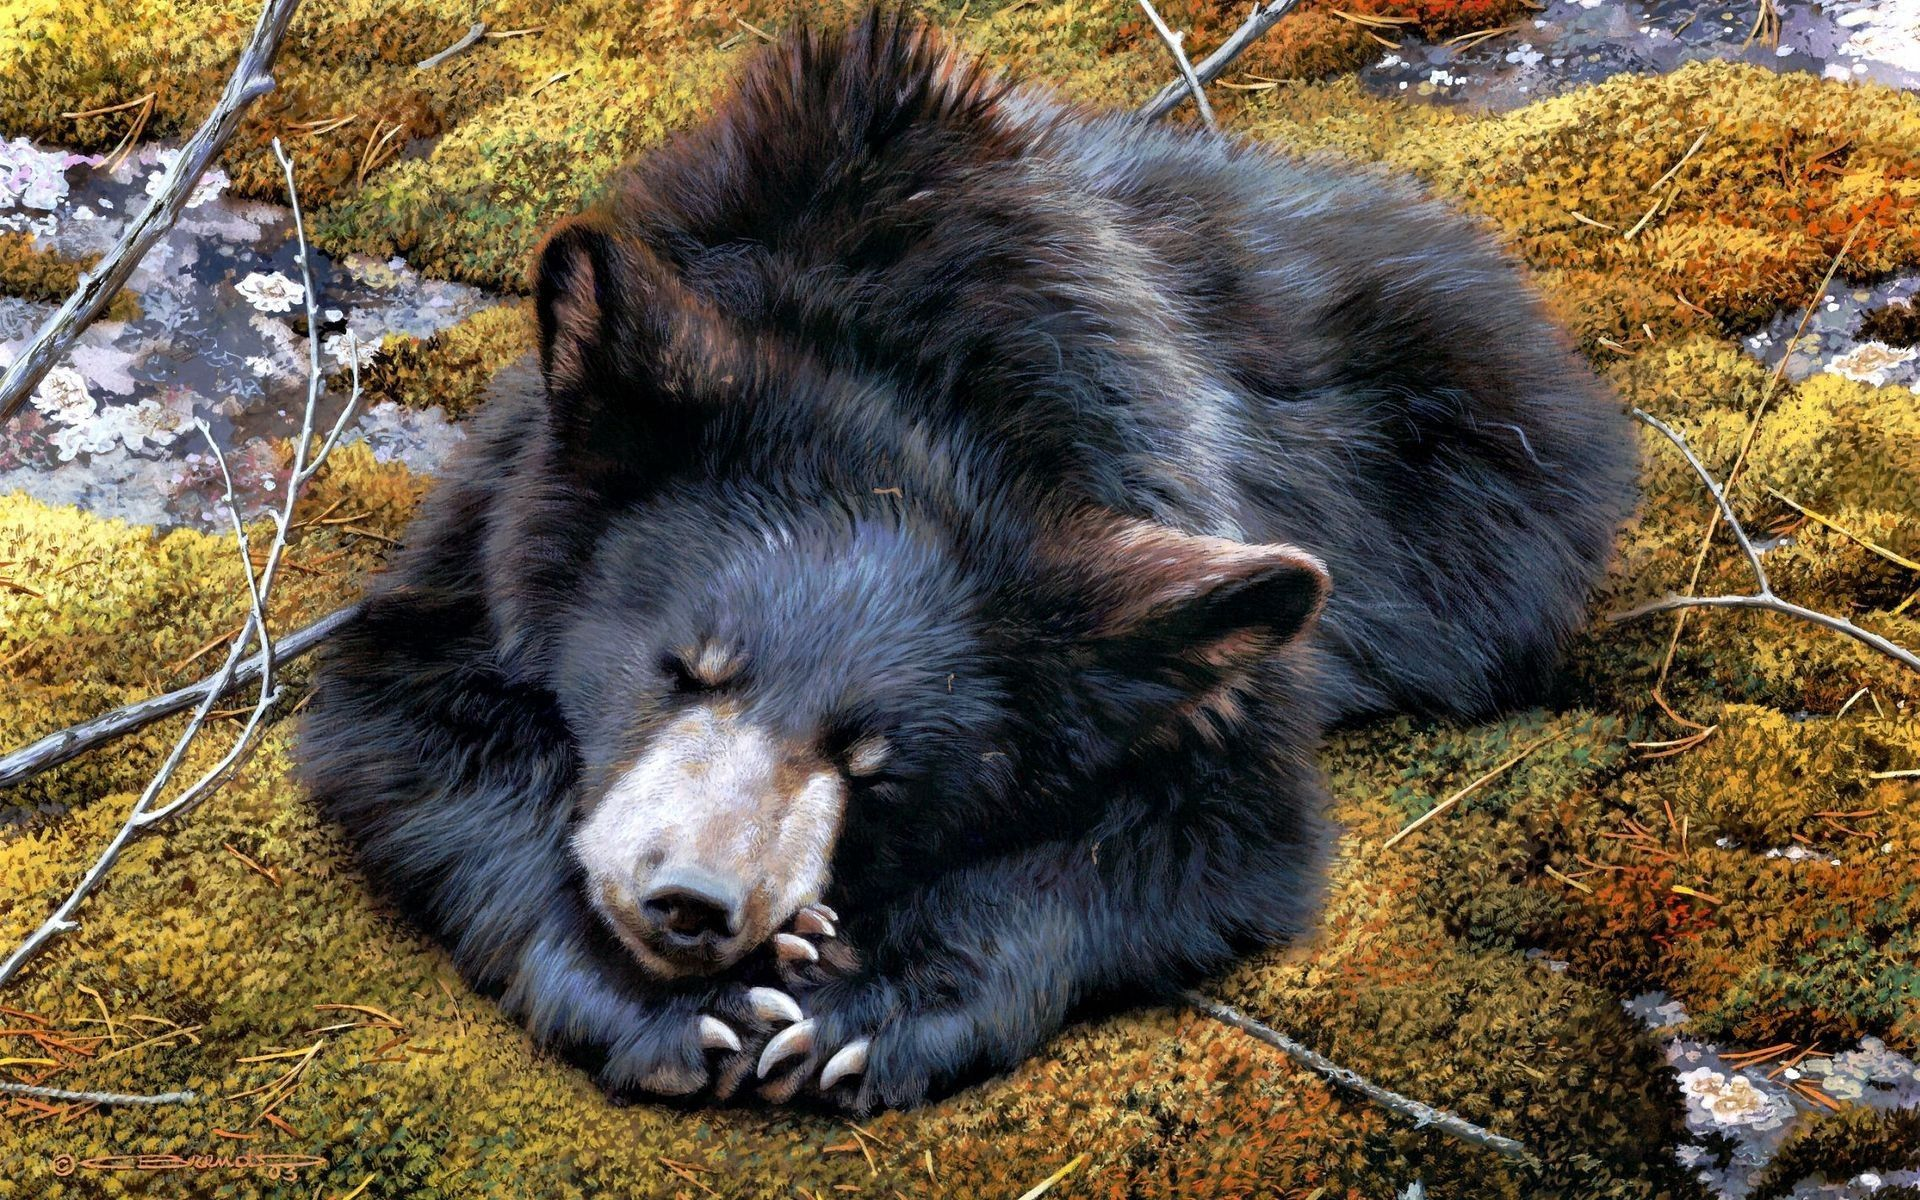 94948 download wallpaper Animals, Bear, To Lie Down, Lie, Moss, Variety screensavers and pictures for free